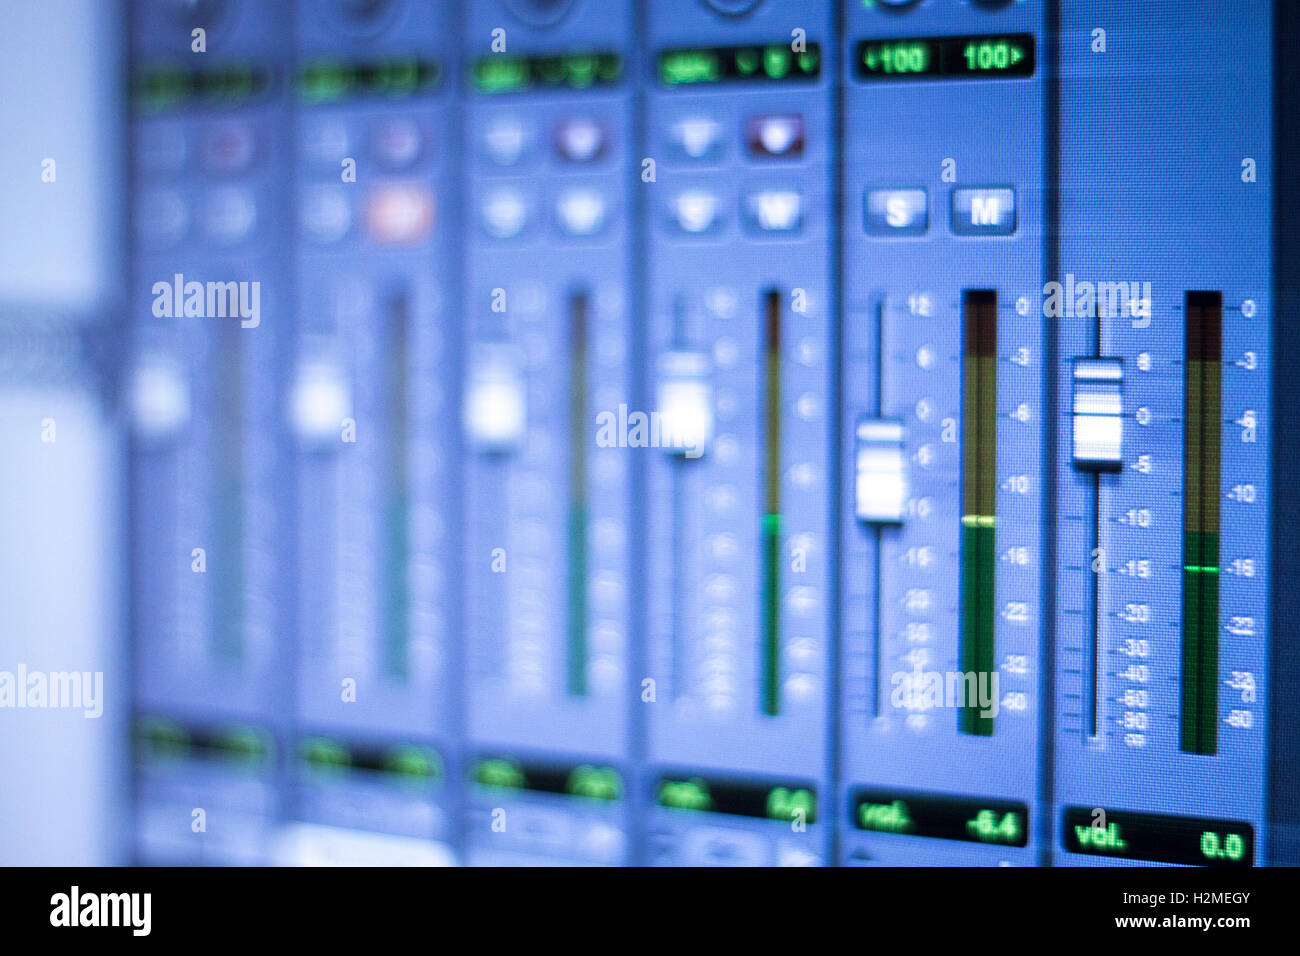 Digital Graphic Equaliser Review Yamaha Ydp2006 Parametric Equalizer Using La3600 Electronic Circuits And Diagram Background Stock Photos